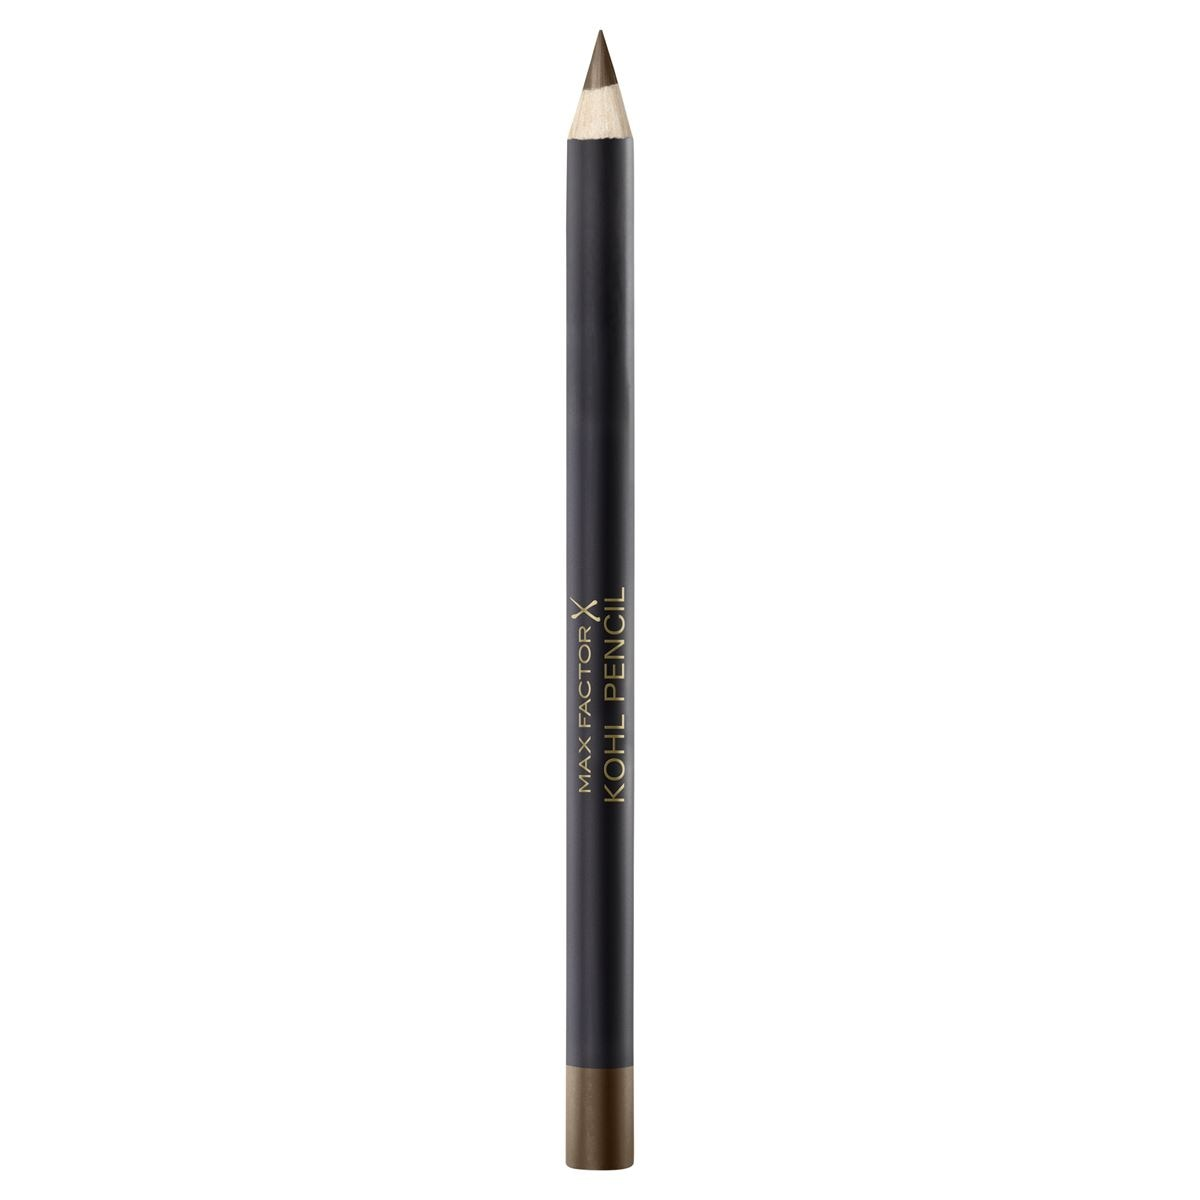 Kohl pencil taupe  - Sanborns